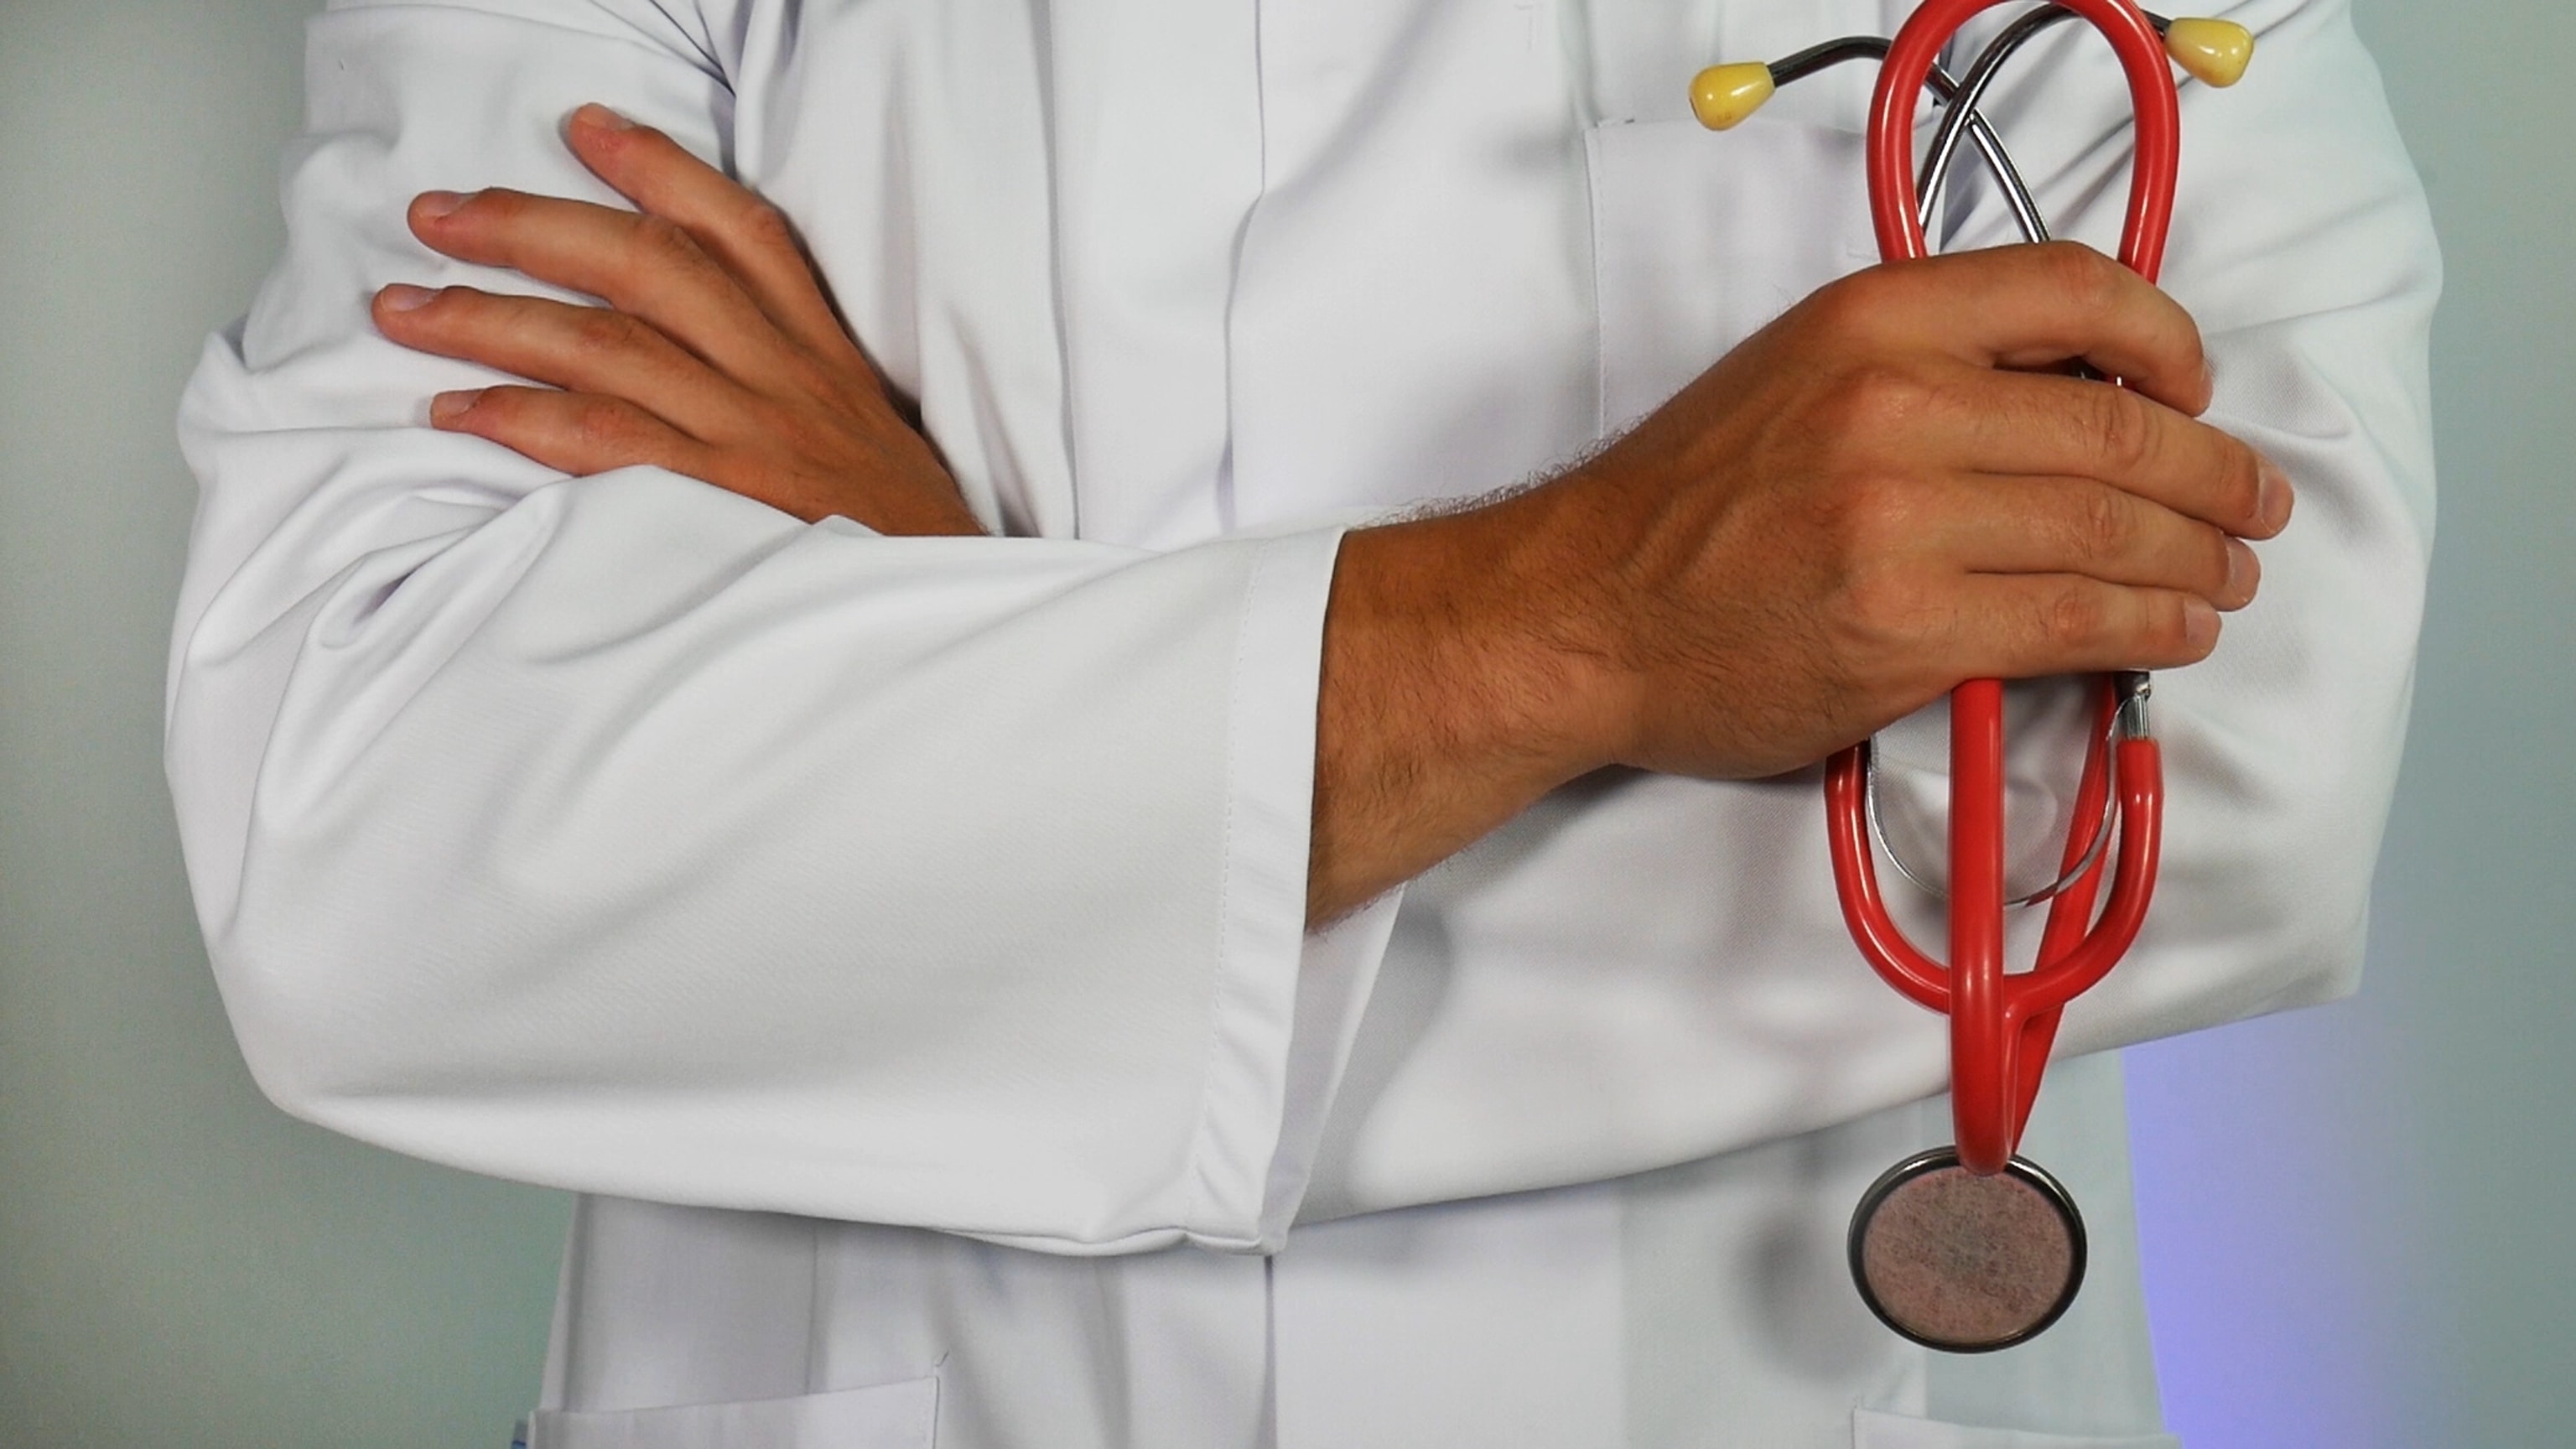 crossed arms of a doctor holding medical equipment in his right hand